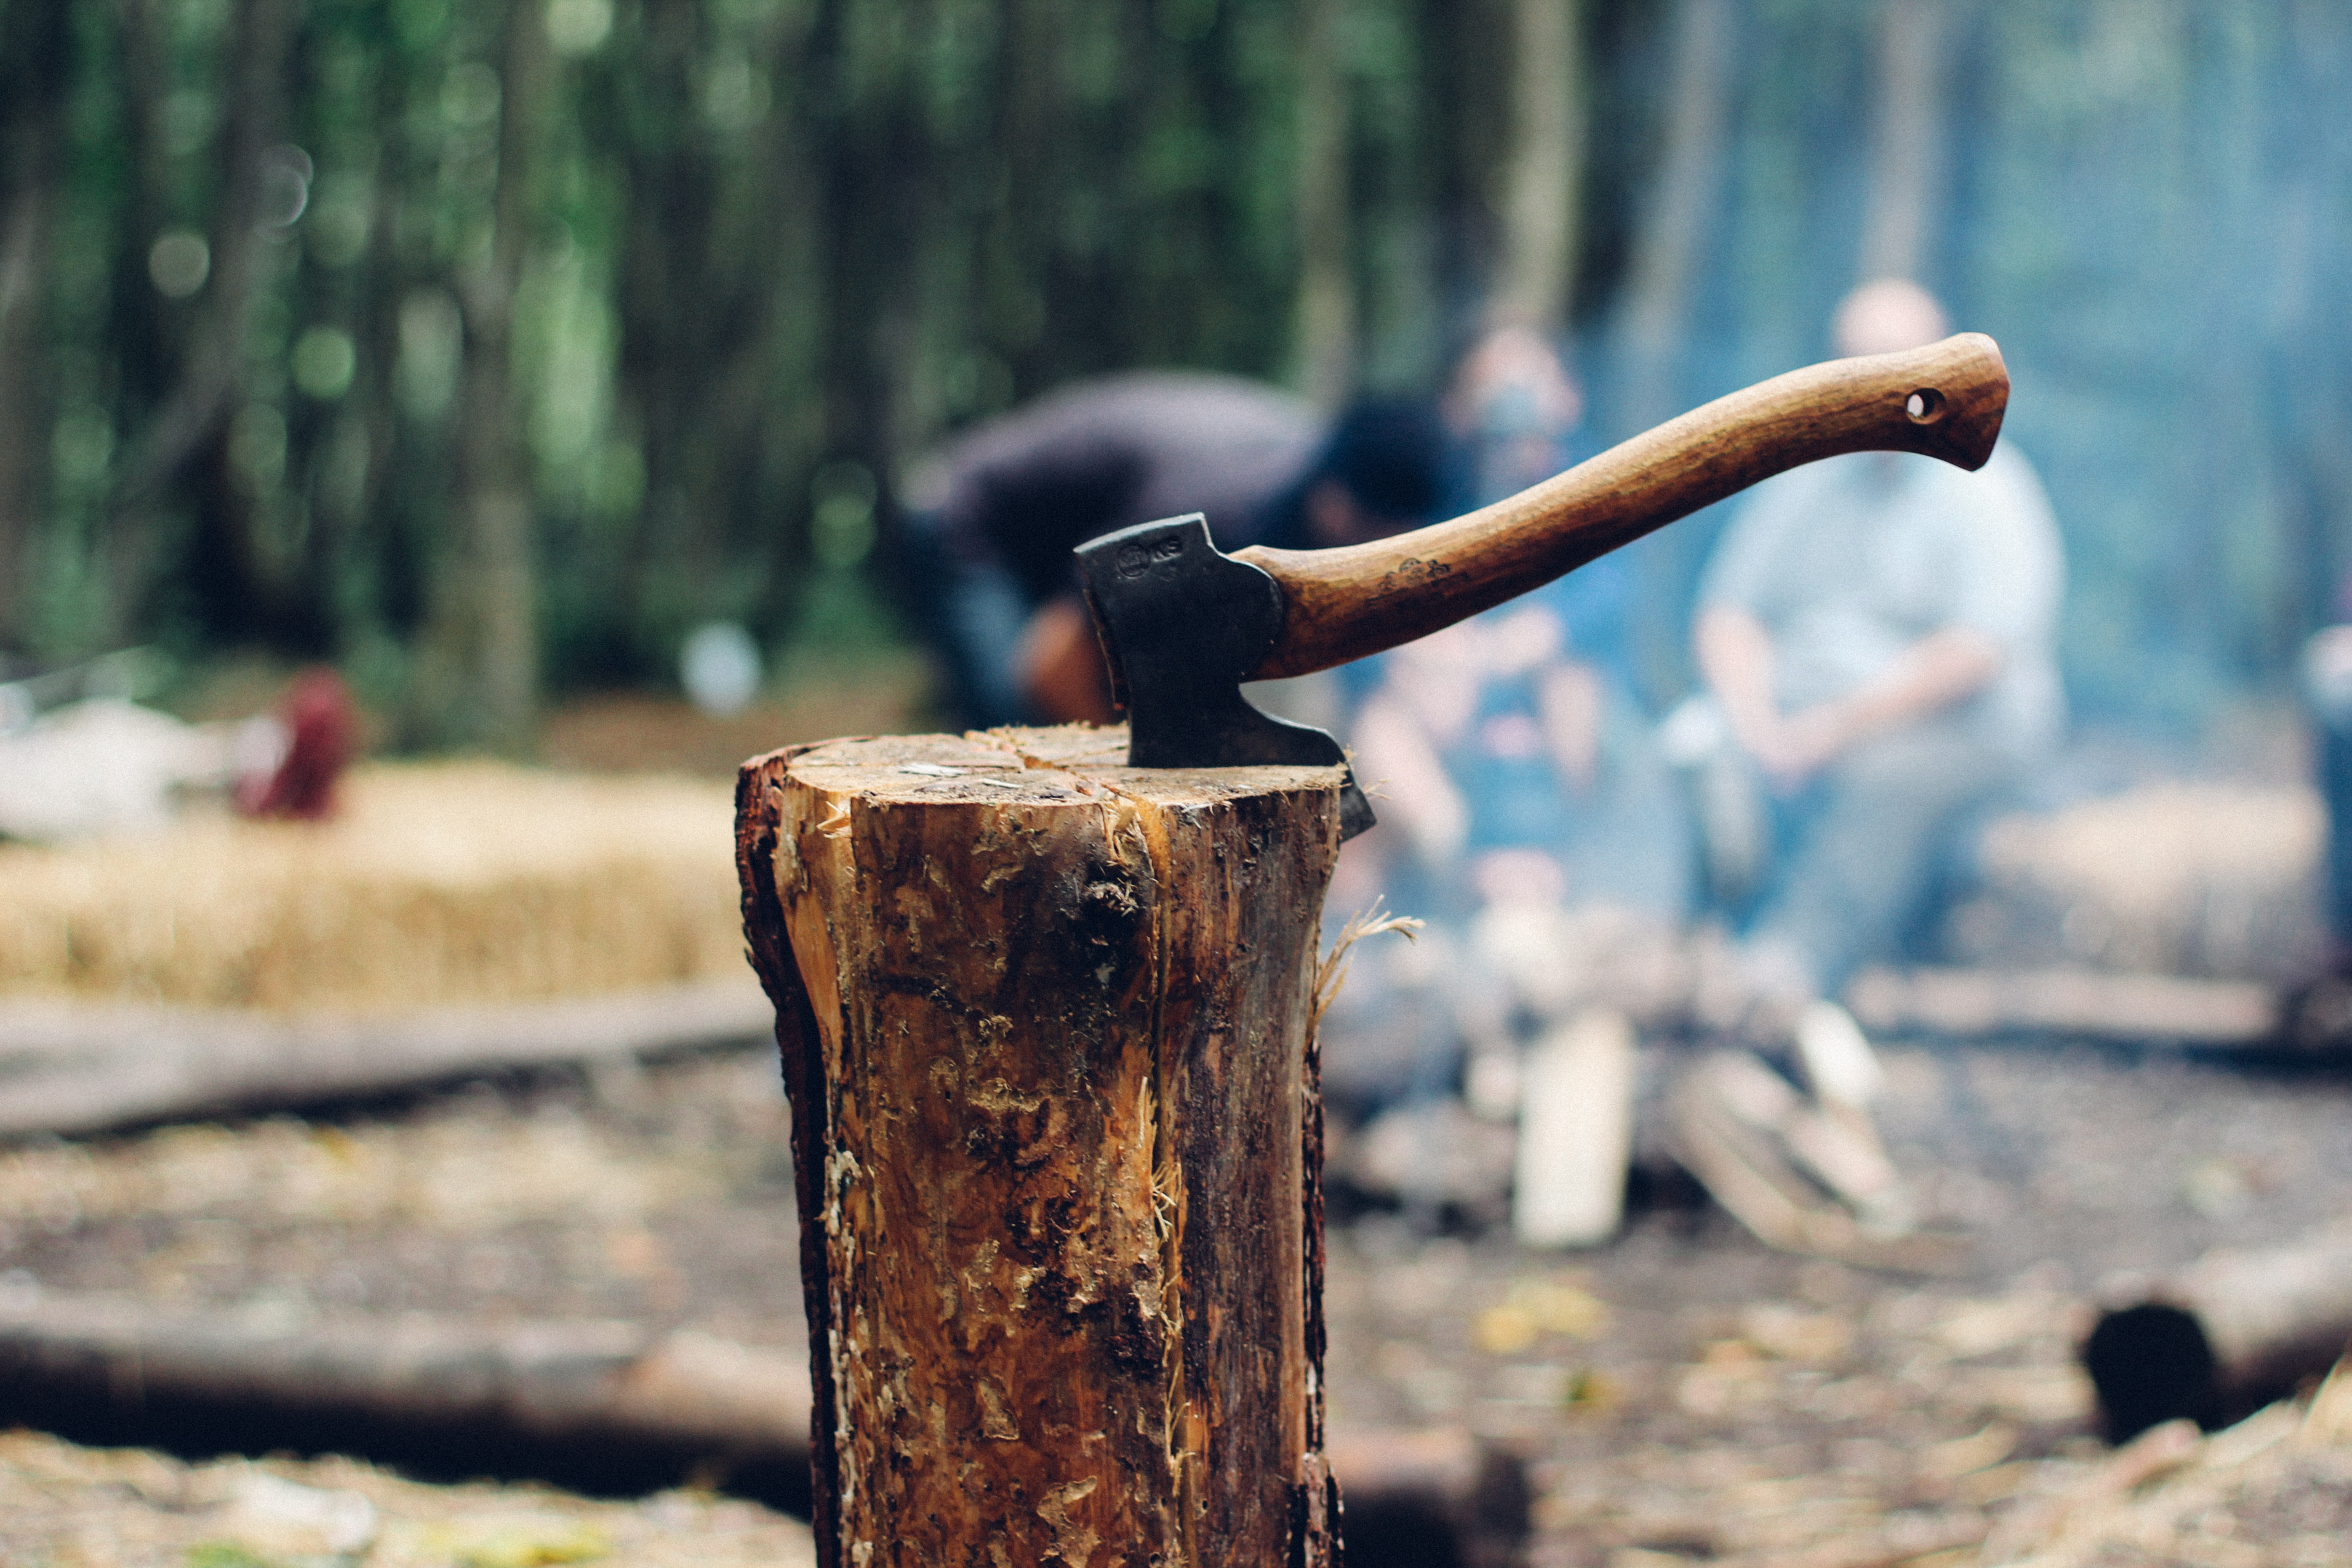 axe on tree log next to people sitting next to bonfire